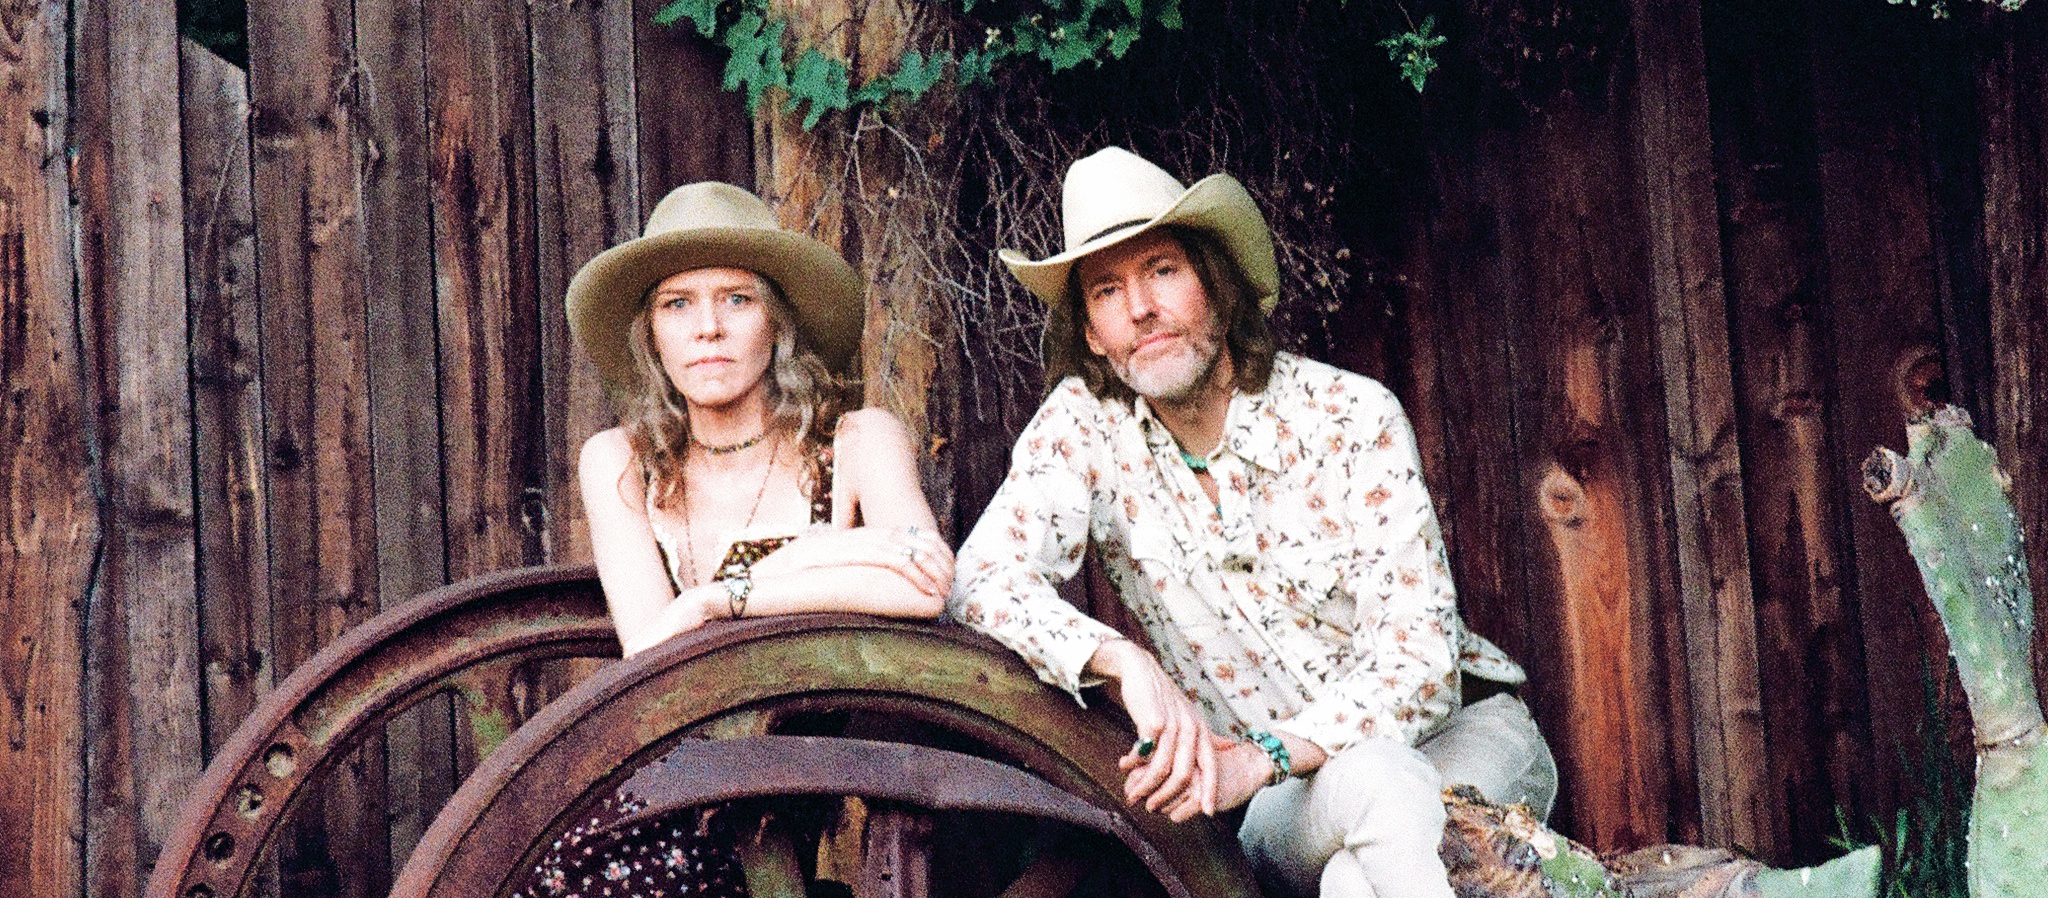 David Rawlings